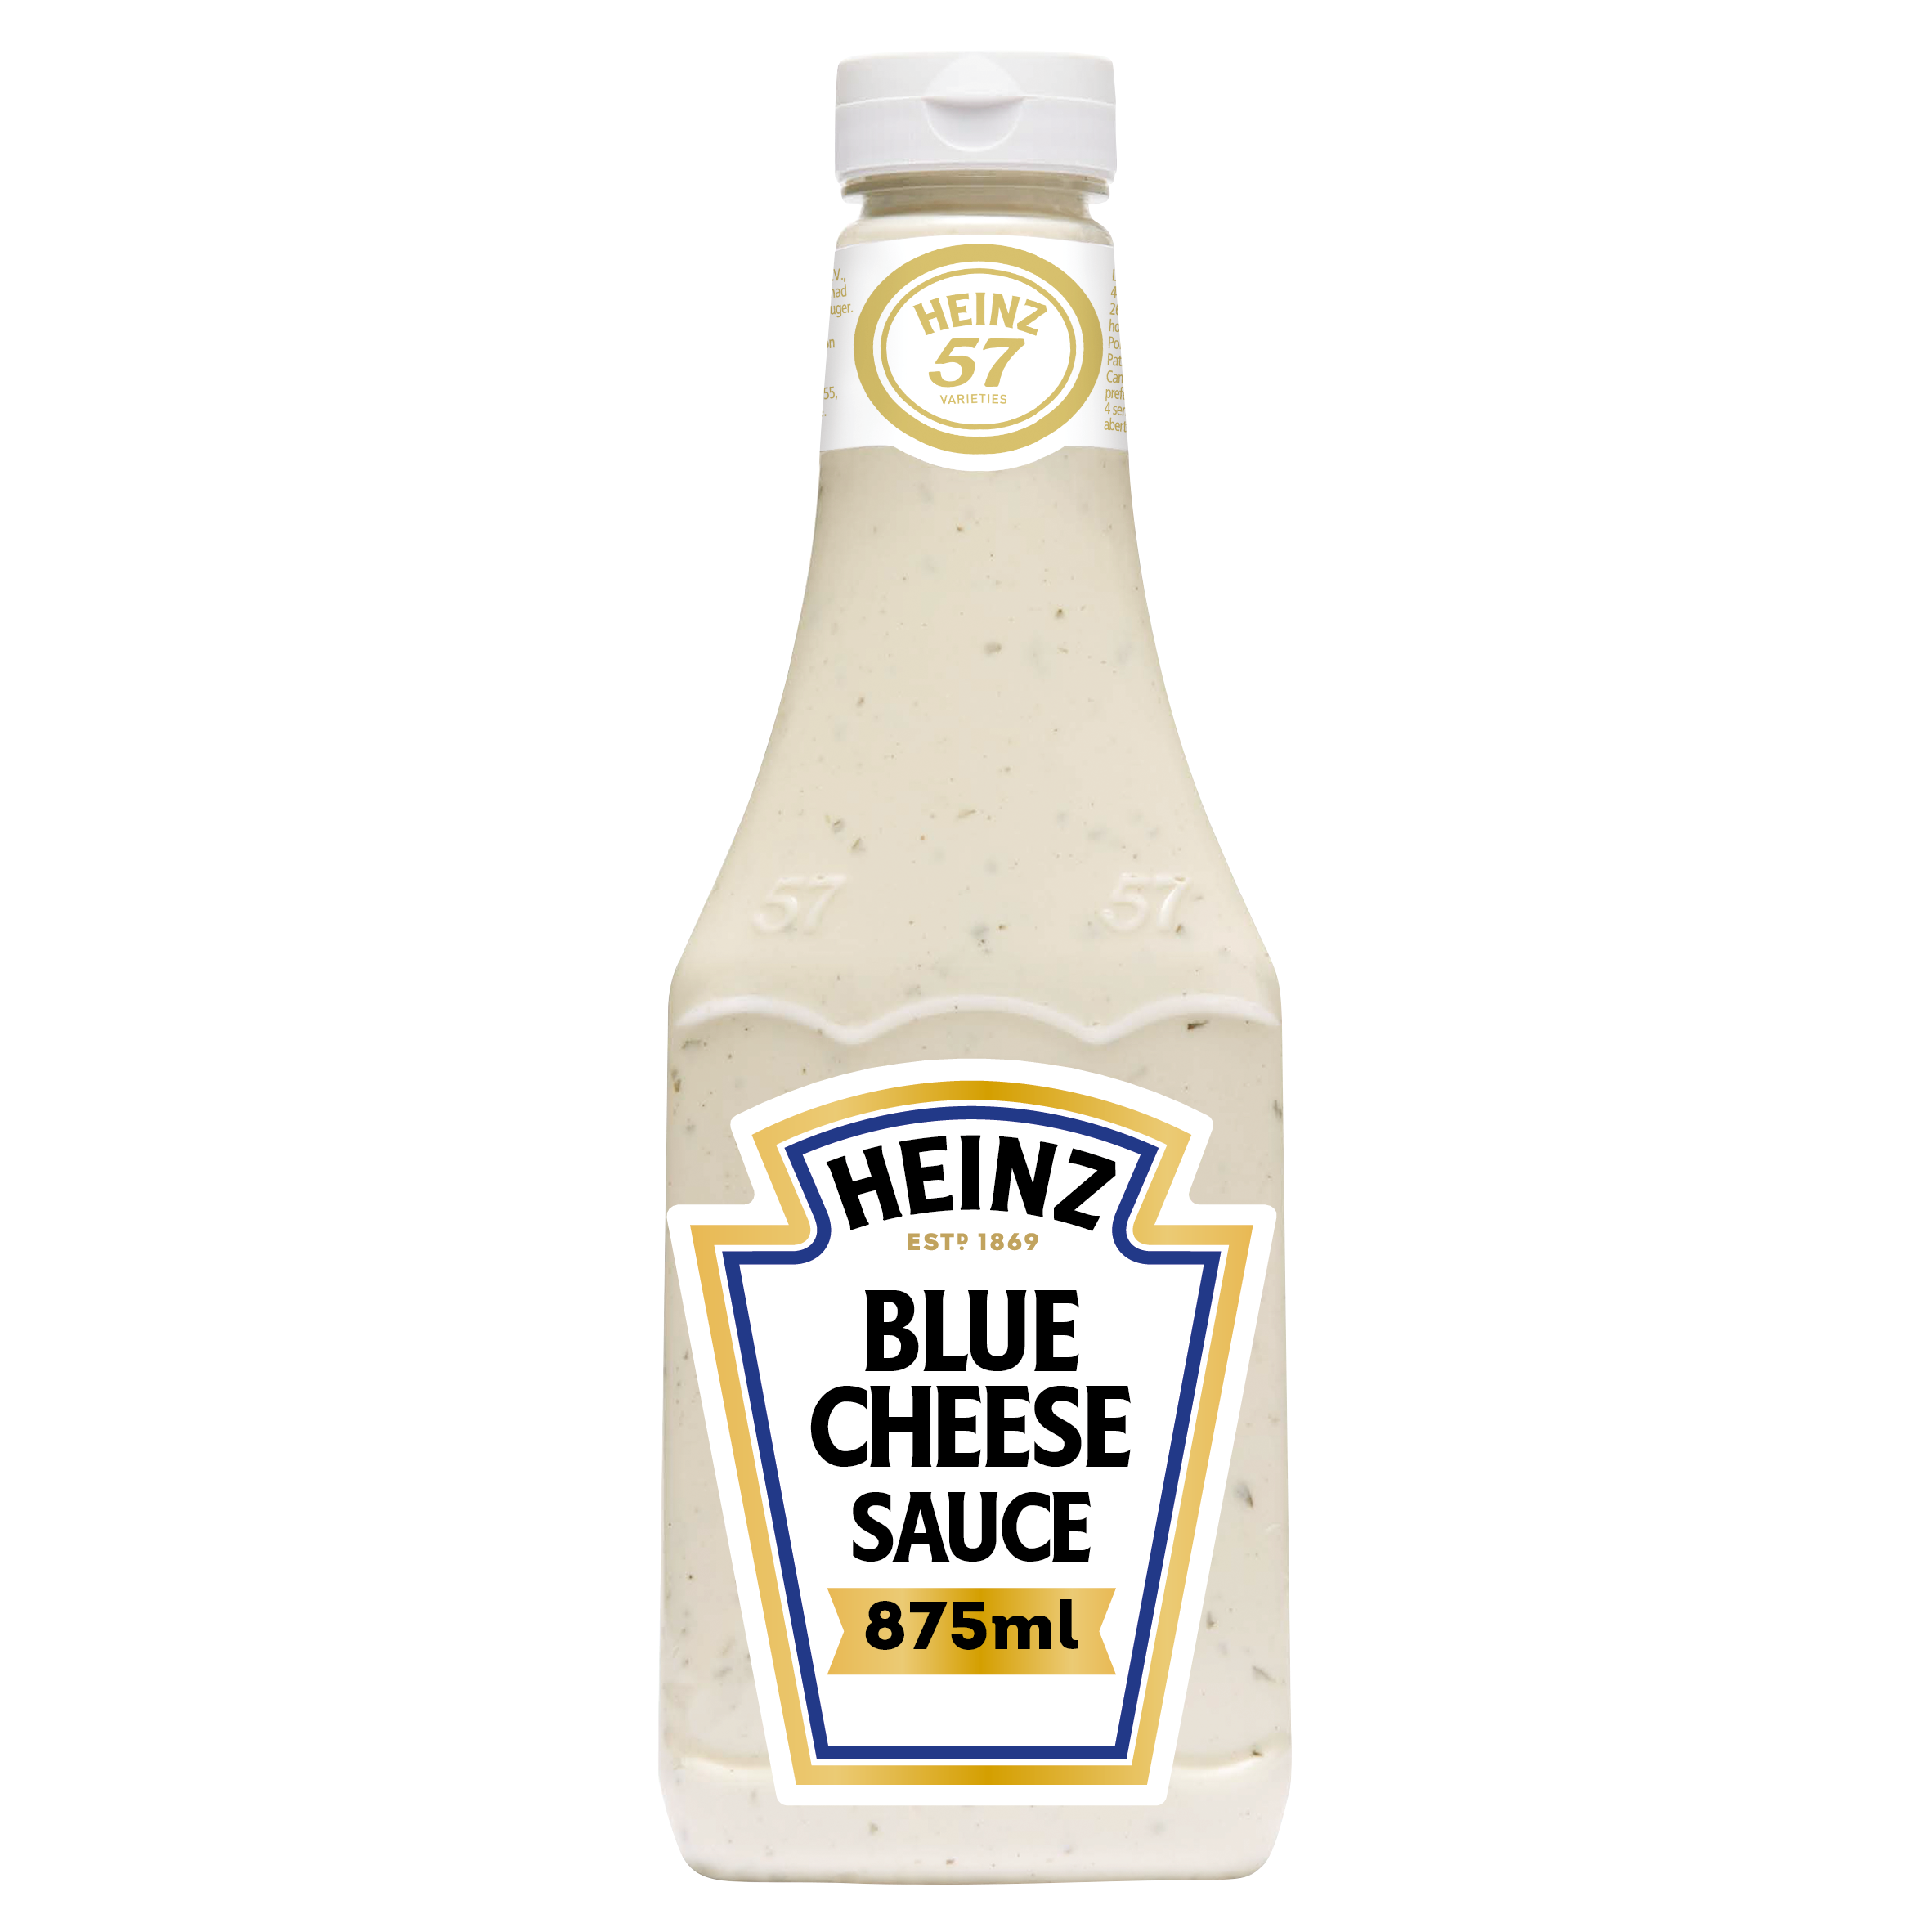 Heinz Blue Cheese Sauce 875ml Up Right image